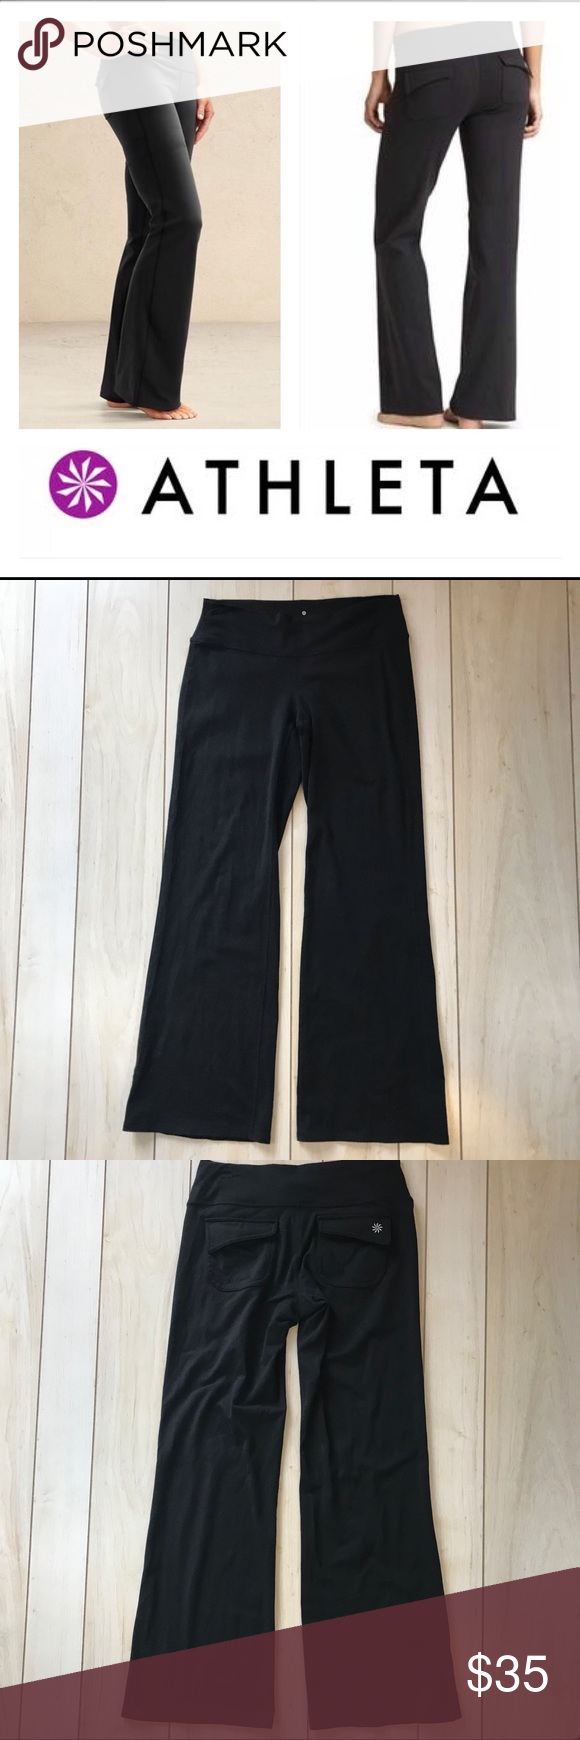 eee42f7c5dbd5 Athleta Black Fushion Yoga Wide Leg Pants Black pants with back flap  pockets Wider leg or flare style Wide waistband Size small petite (SP) Very  good ...